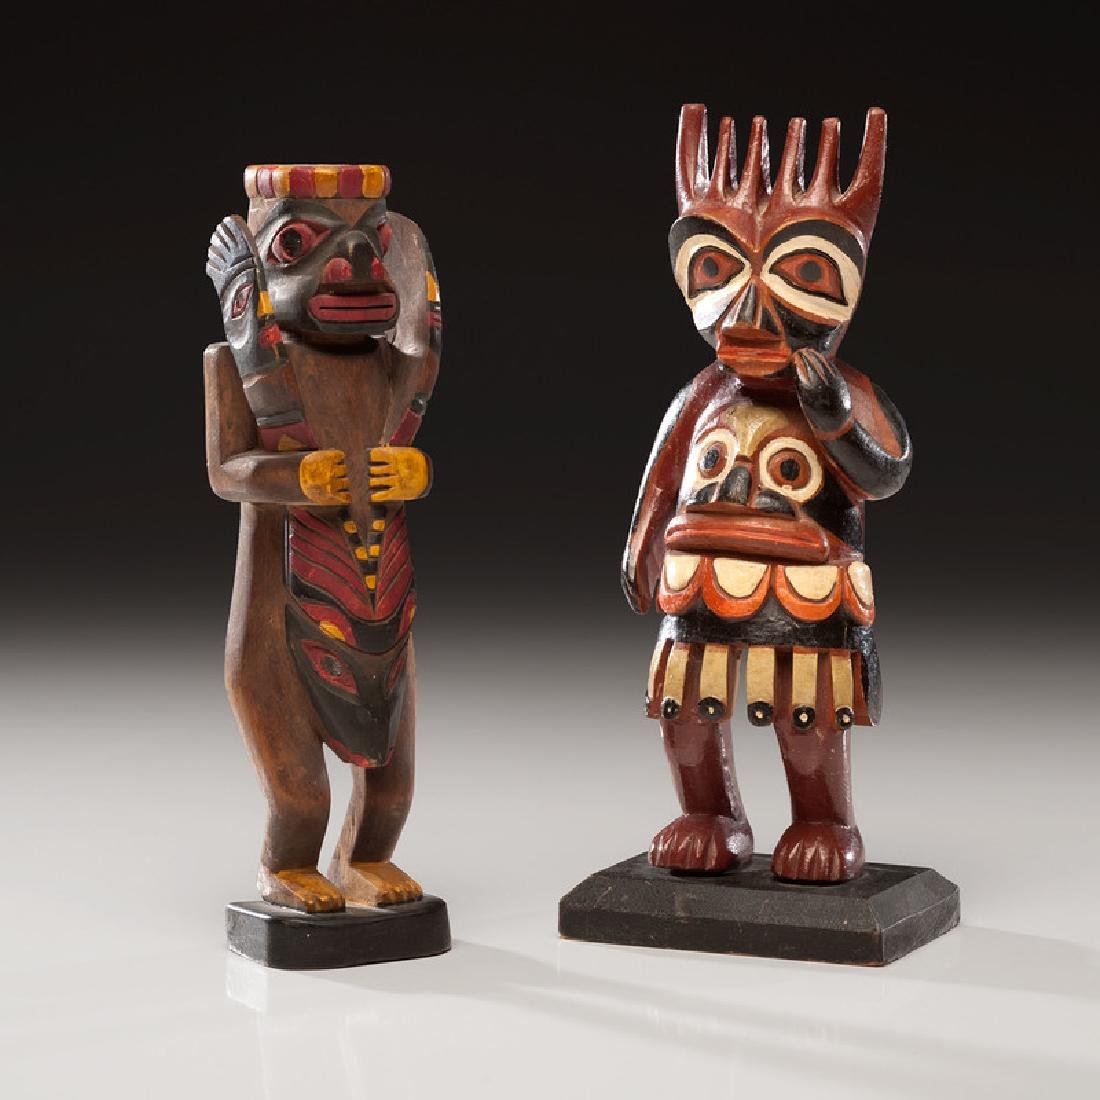 Northwest Coast Painted Wood Carvings with Nugget Shop